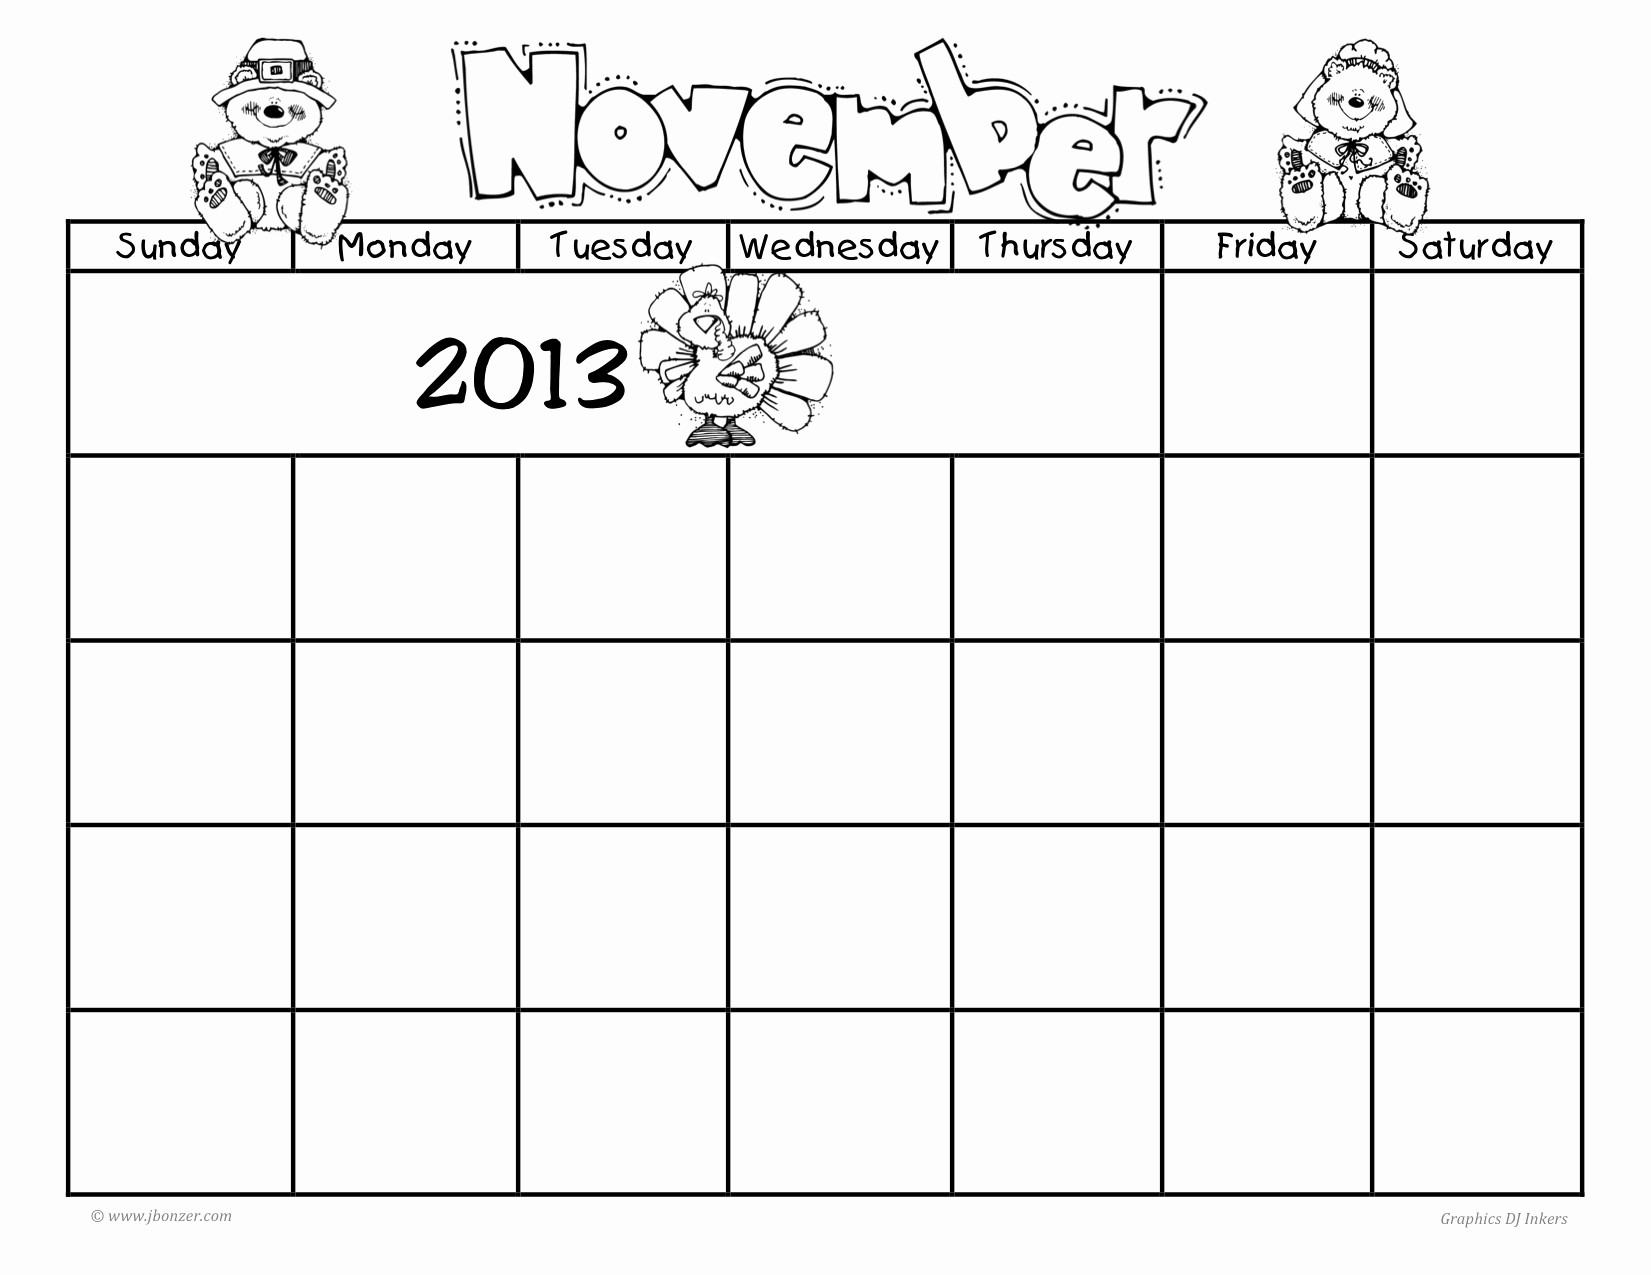 Blank Calendar to Fill In Inspirational Fill In Printable Weekly Calendar All Blank Fill In